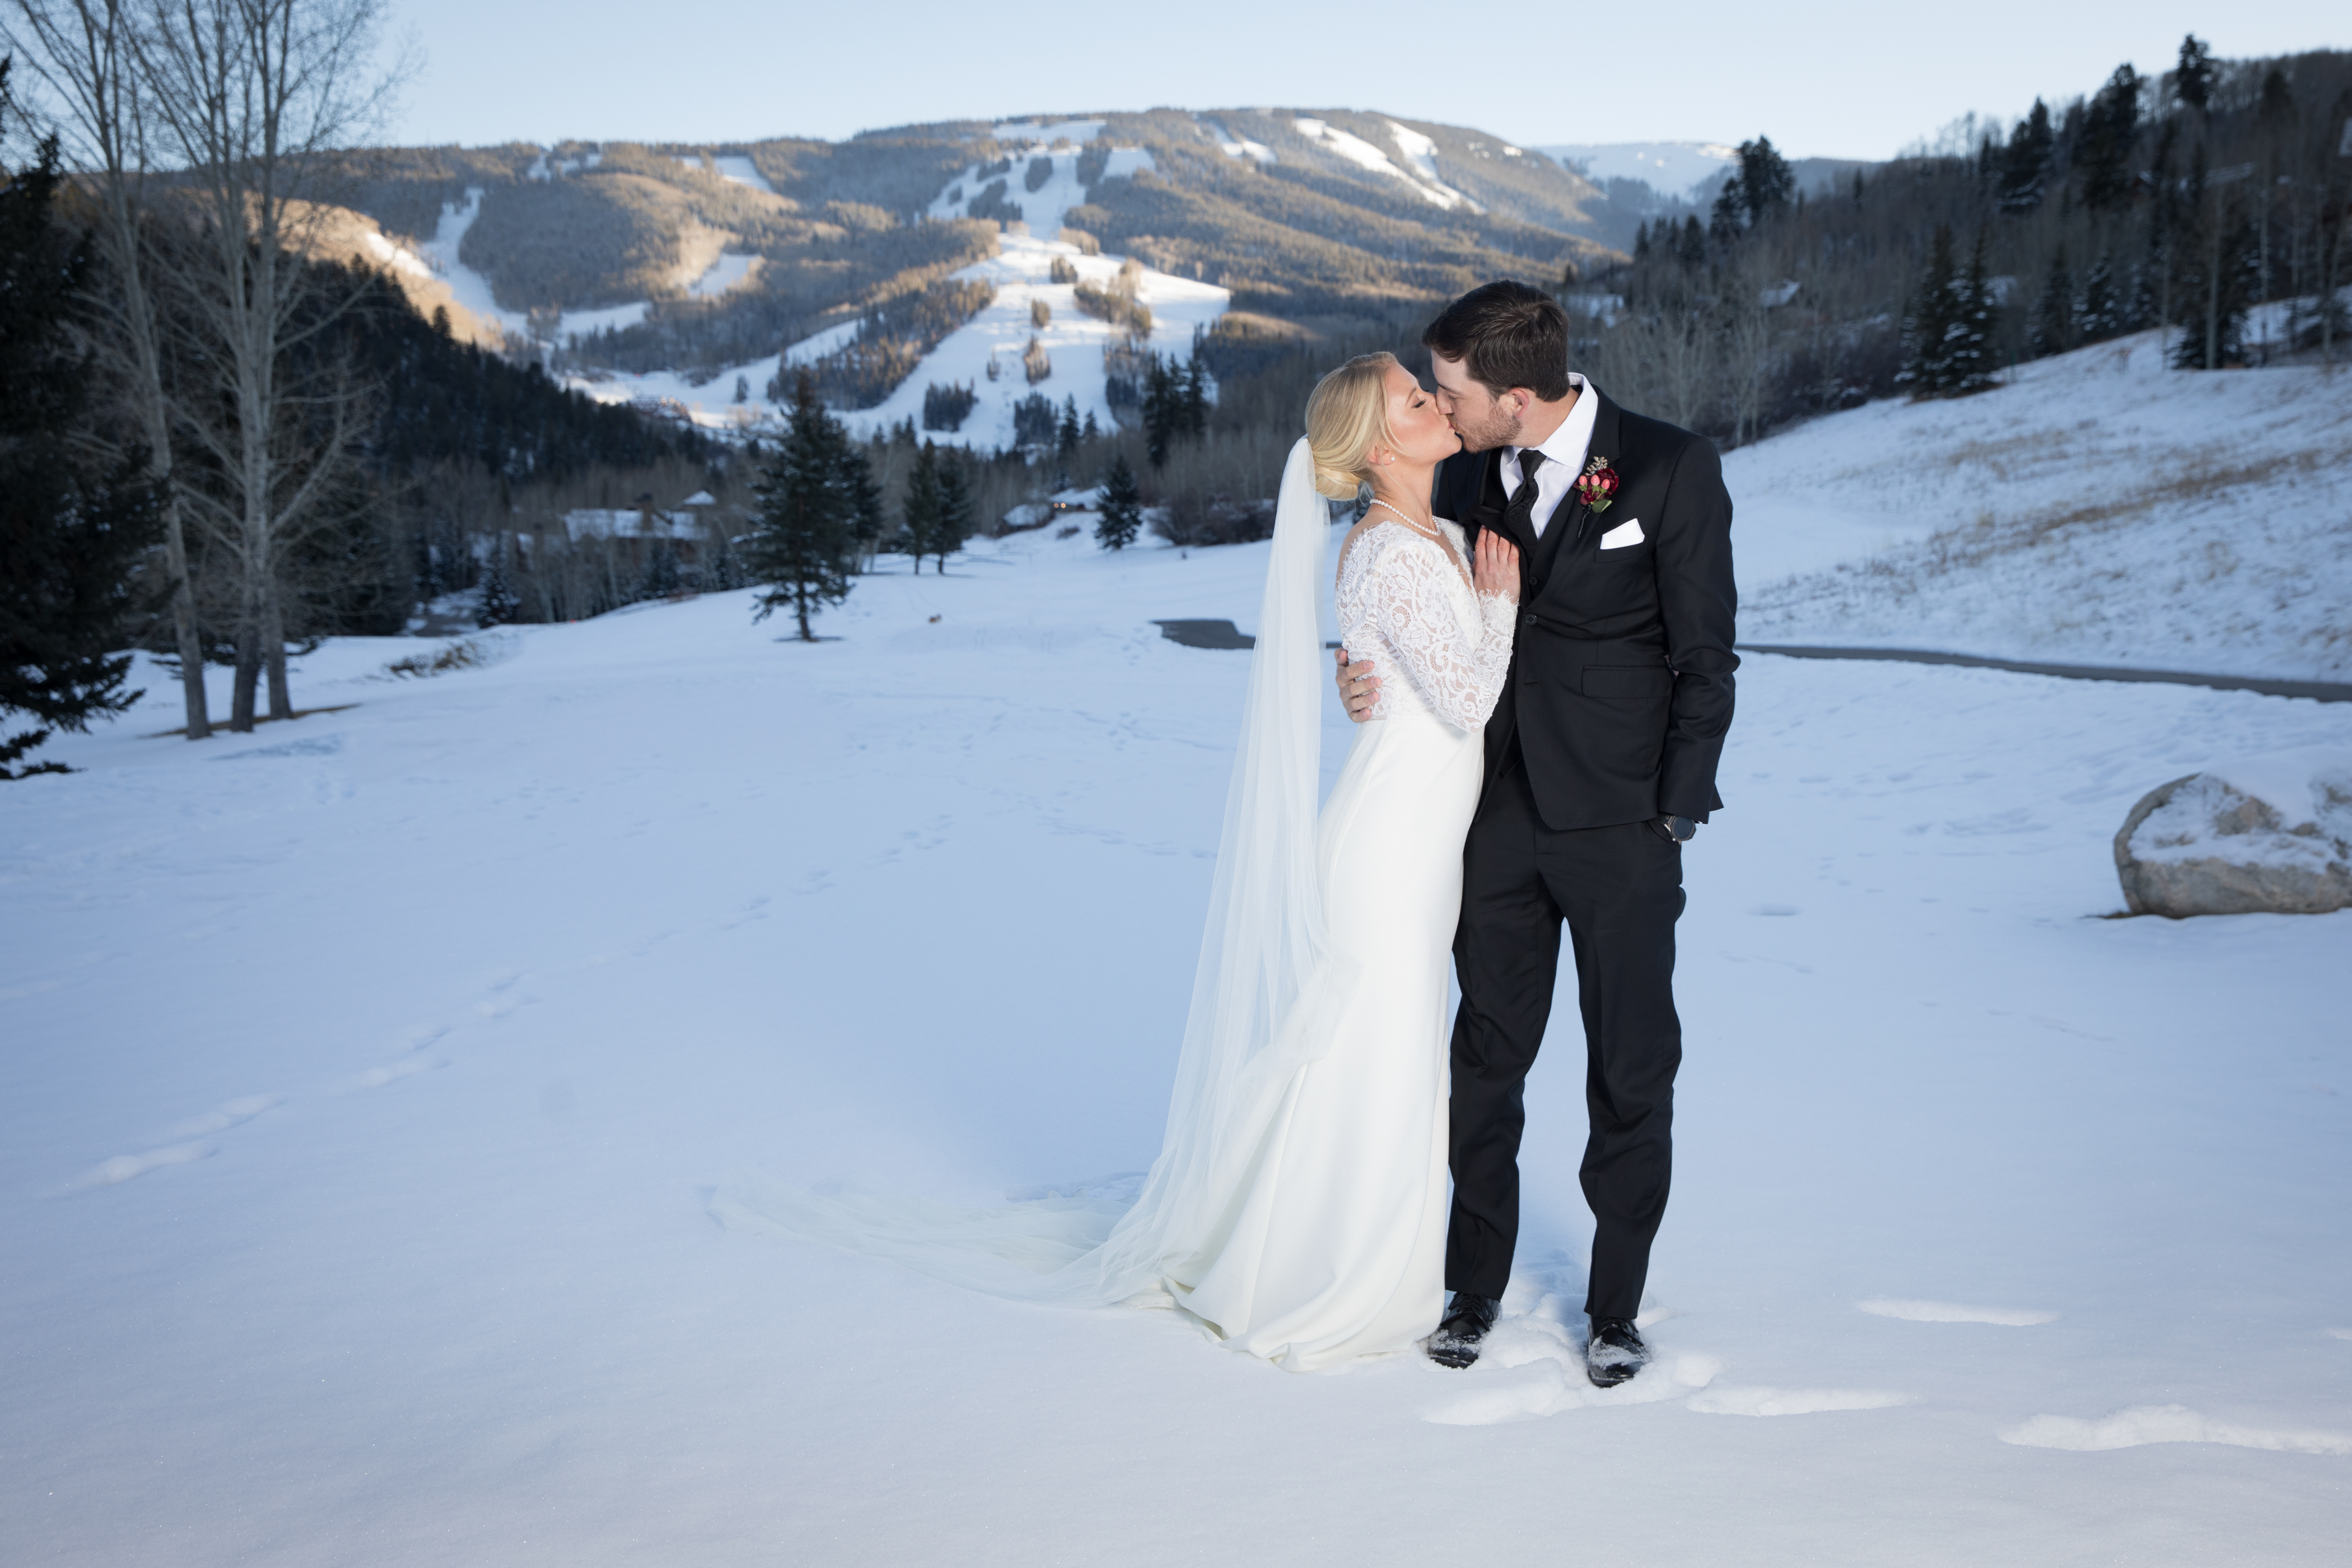 Jaci and Nick Ruhle's wedding in Beaver Creek with photographer Toni Axelrod - Toni Axelrod Studios